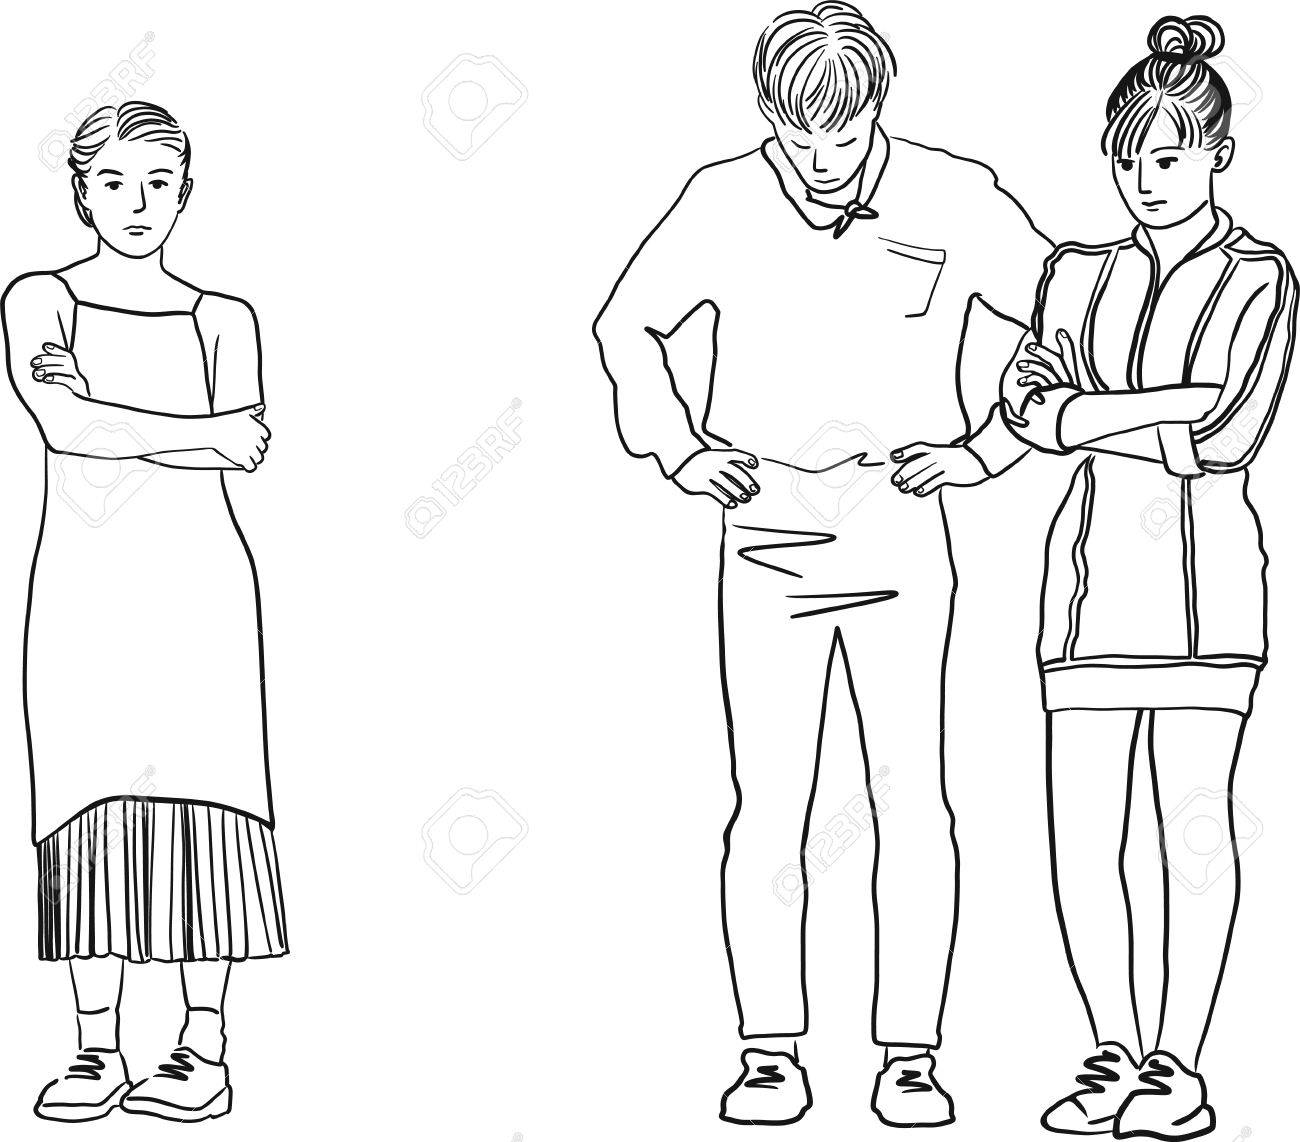 1300x1142 Drawing Of A Man In Between Two Woman. Young Sad Women Standing